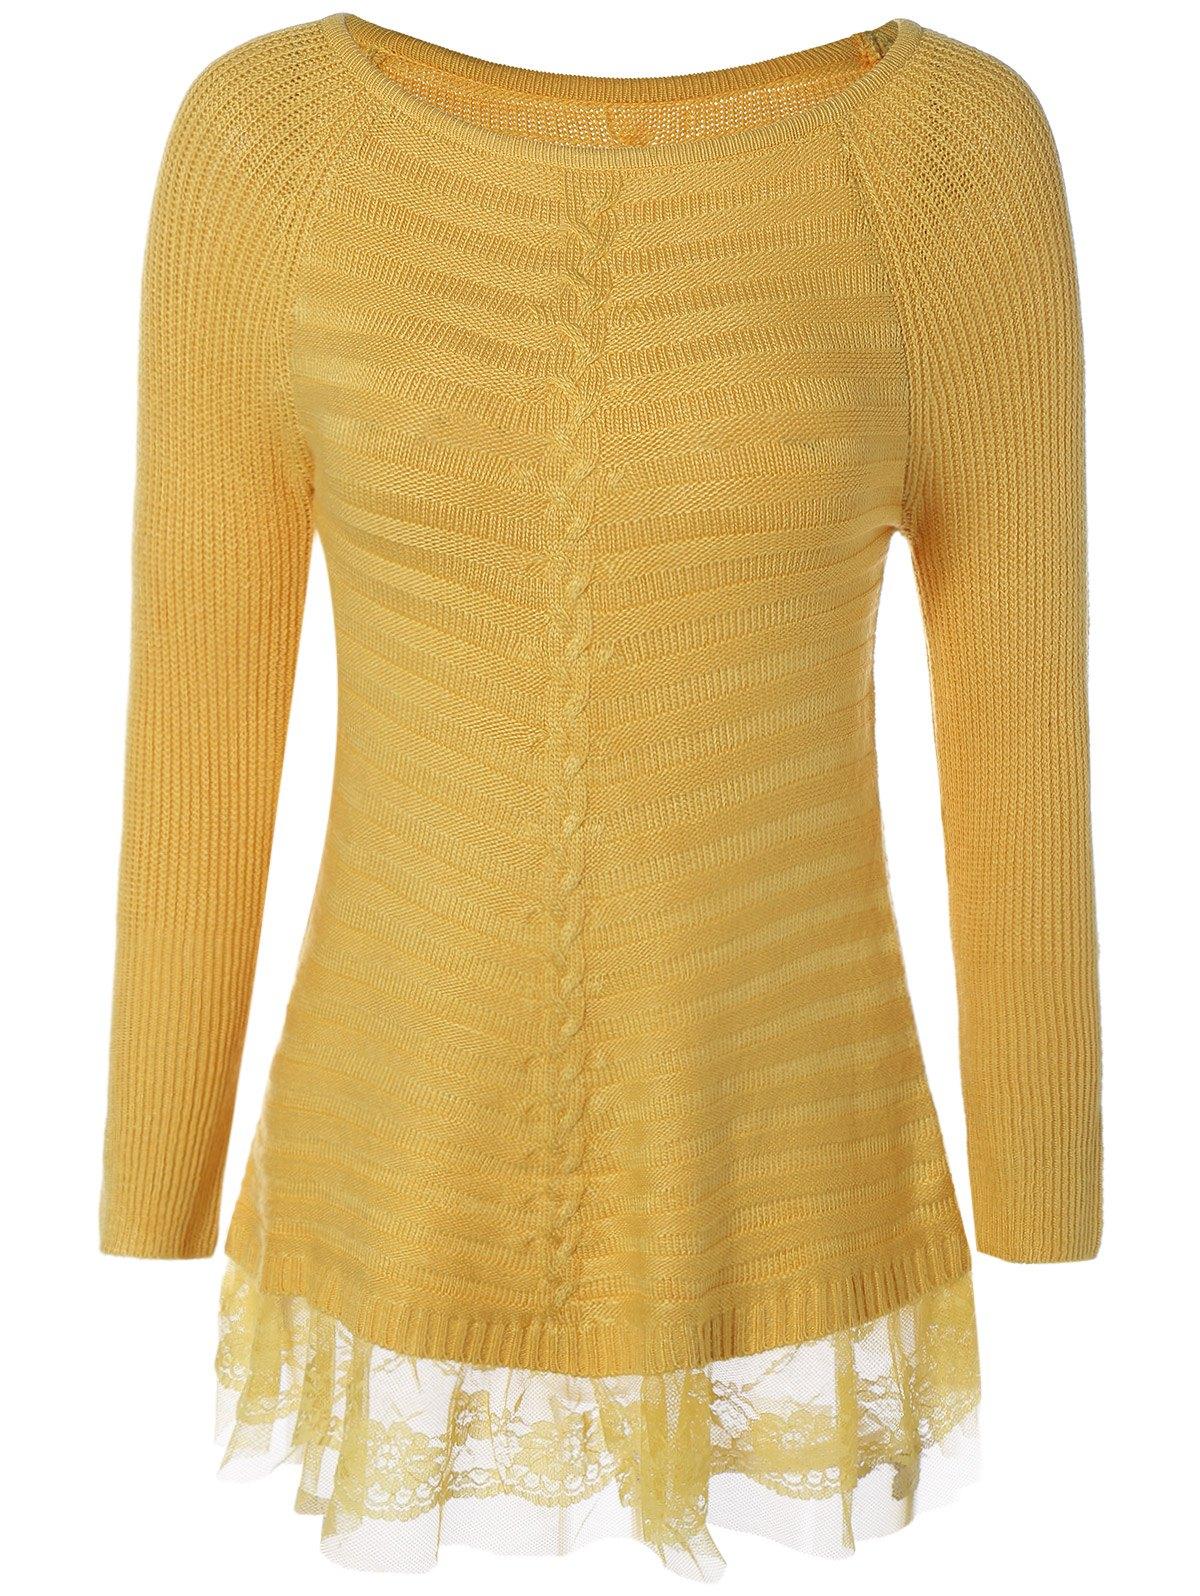 2017 Lace Insert Pullover Cable Knit Sweater YELLOW ONE SIZE In ...